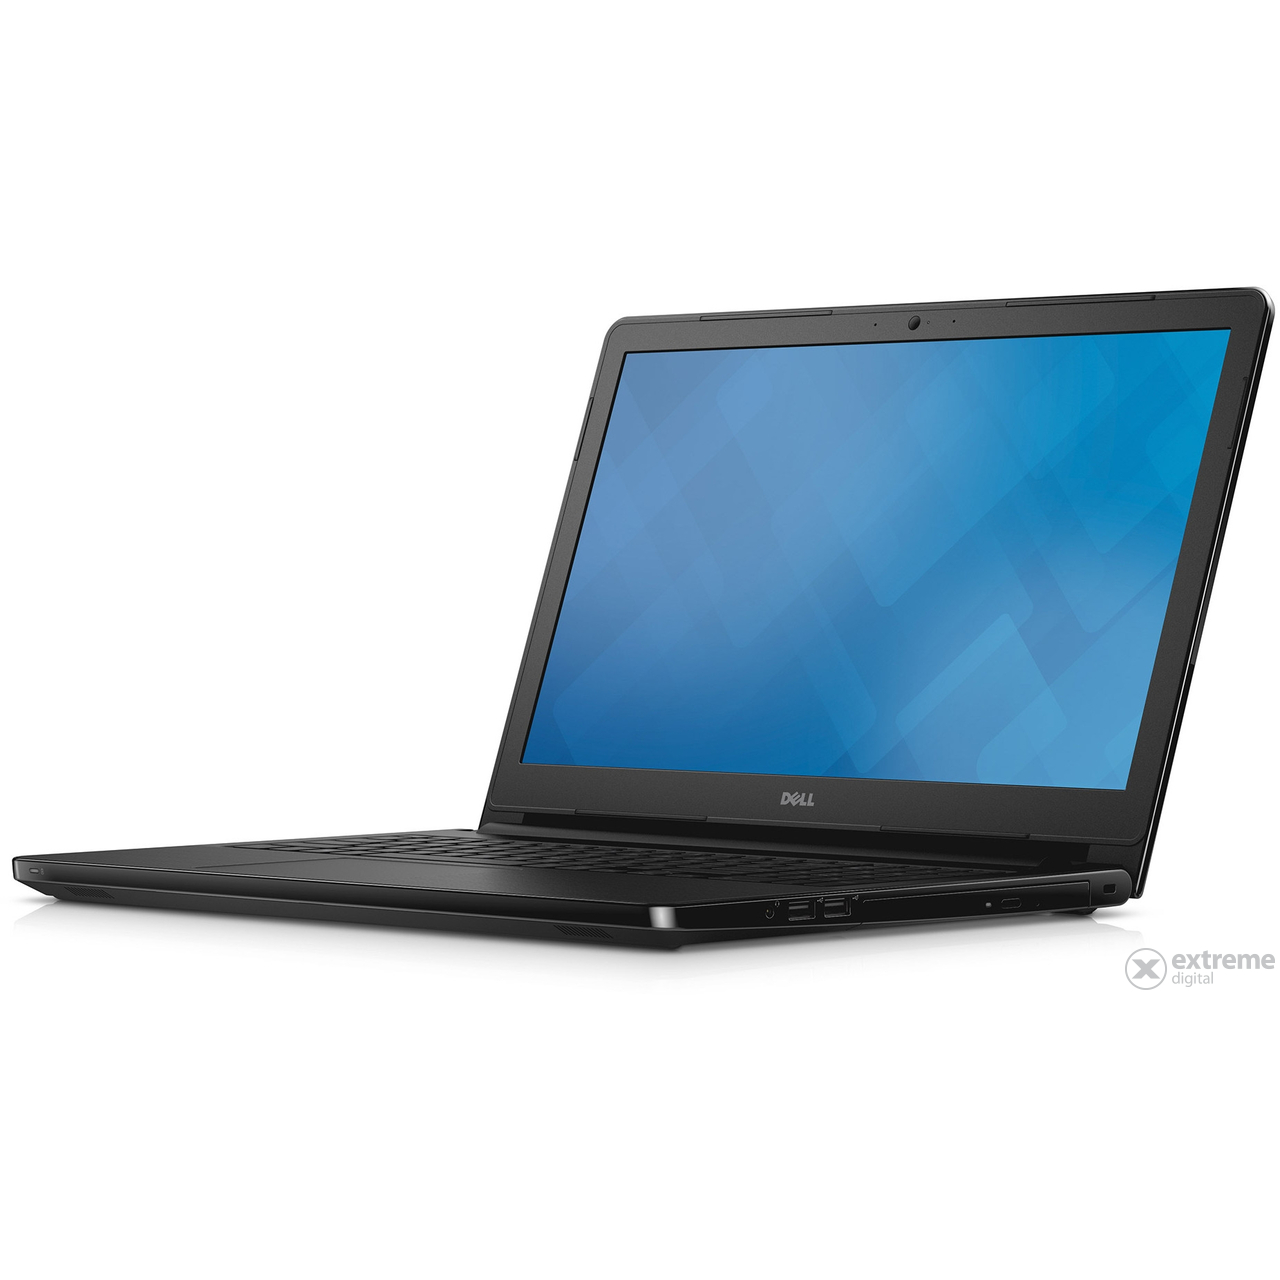 dell-vostro-3558-179723-notebook-fekete-windows-8-1-pro-operacios-rendszer_793b8e24.jpg